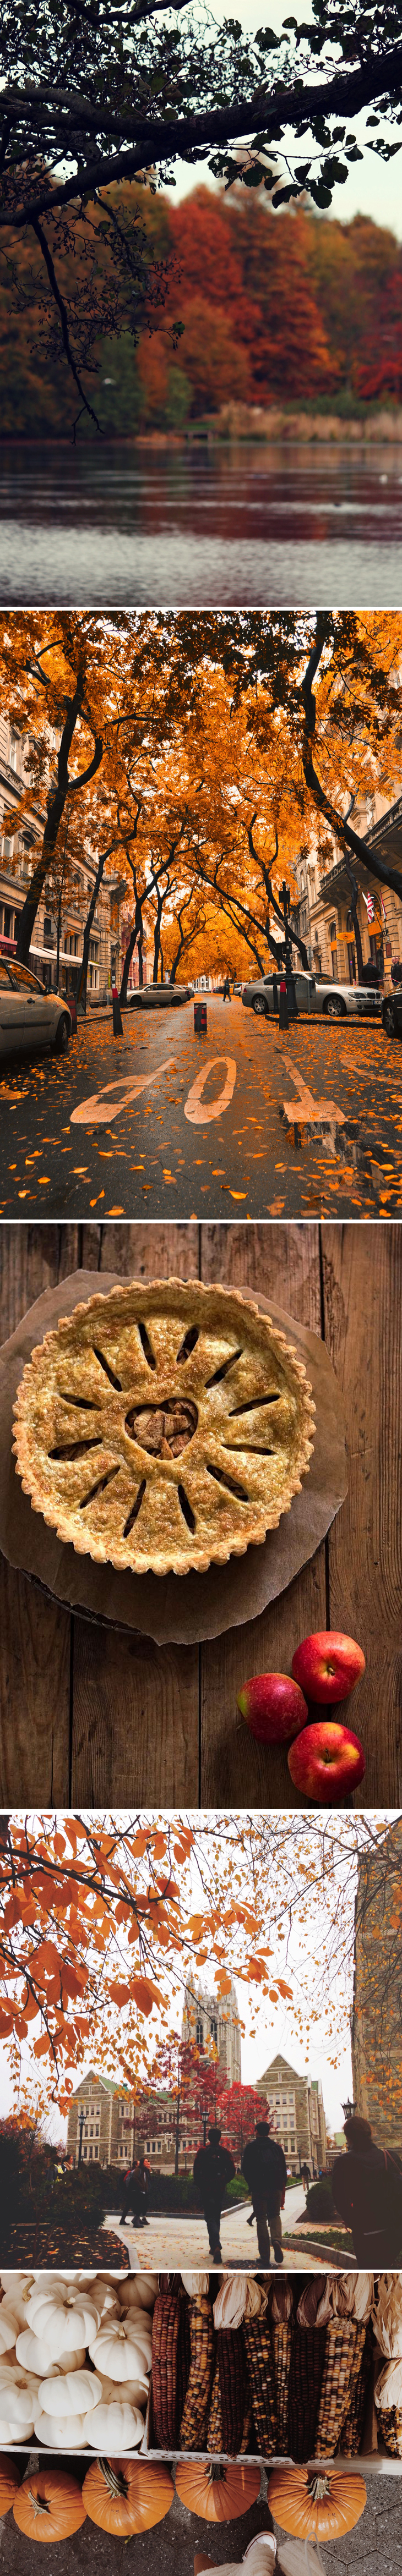 autumn fall guide inspiration cosy fall pumpkin pie